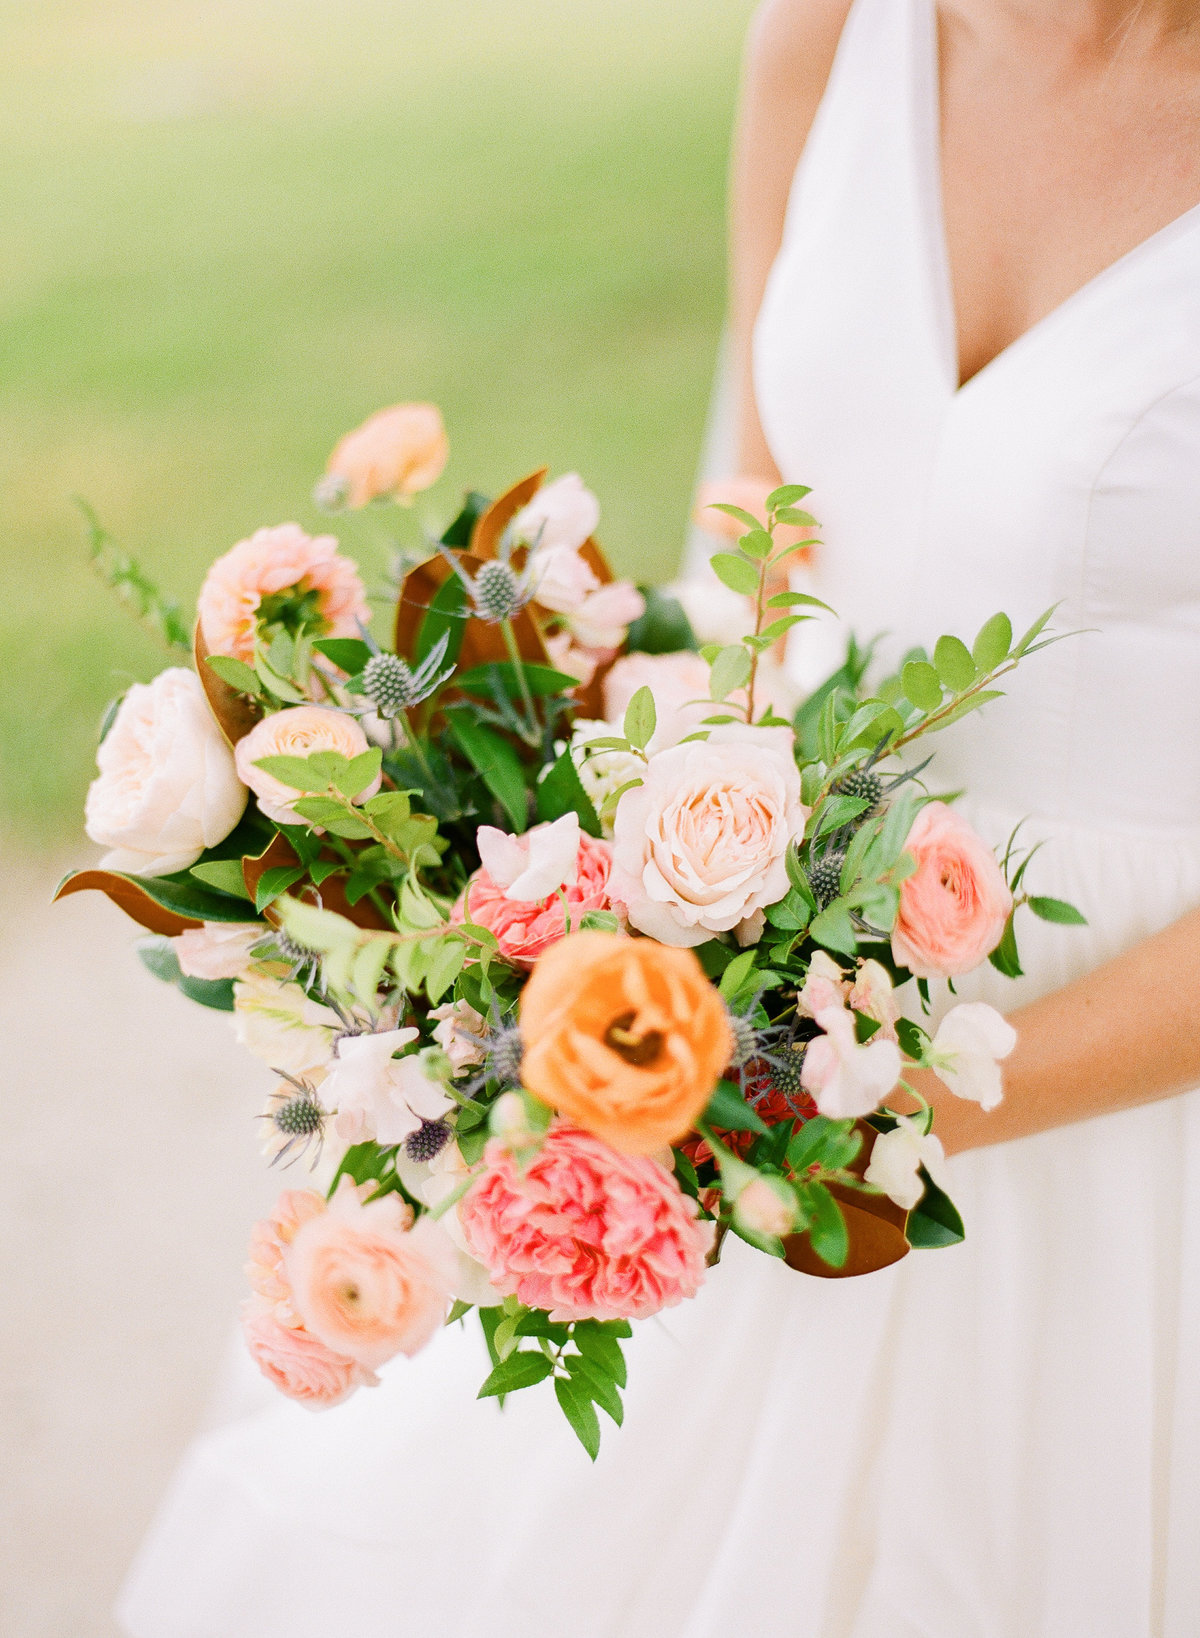 Colorful Bridal Bouquet from Branch Design Studio for October Charleston Wedding